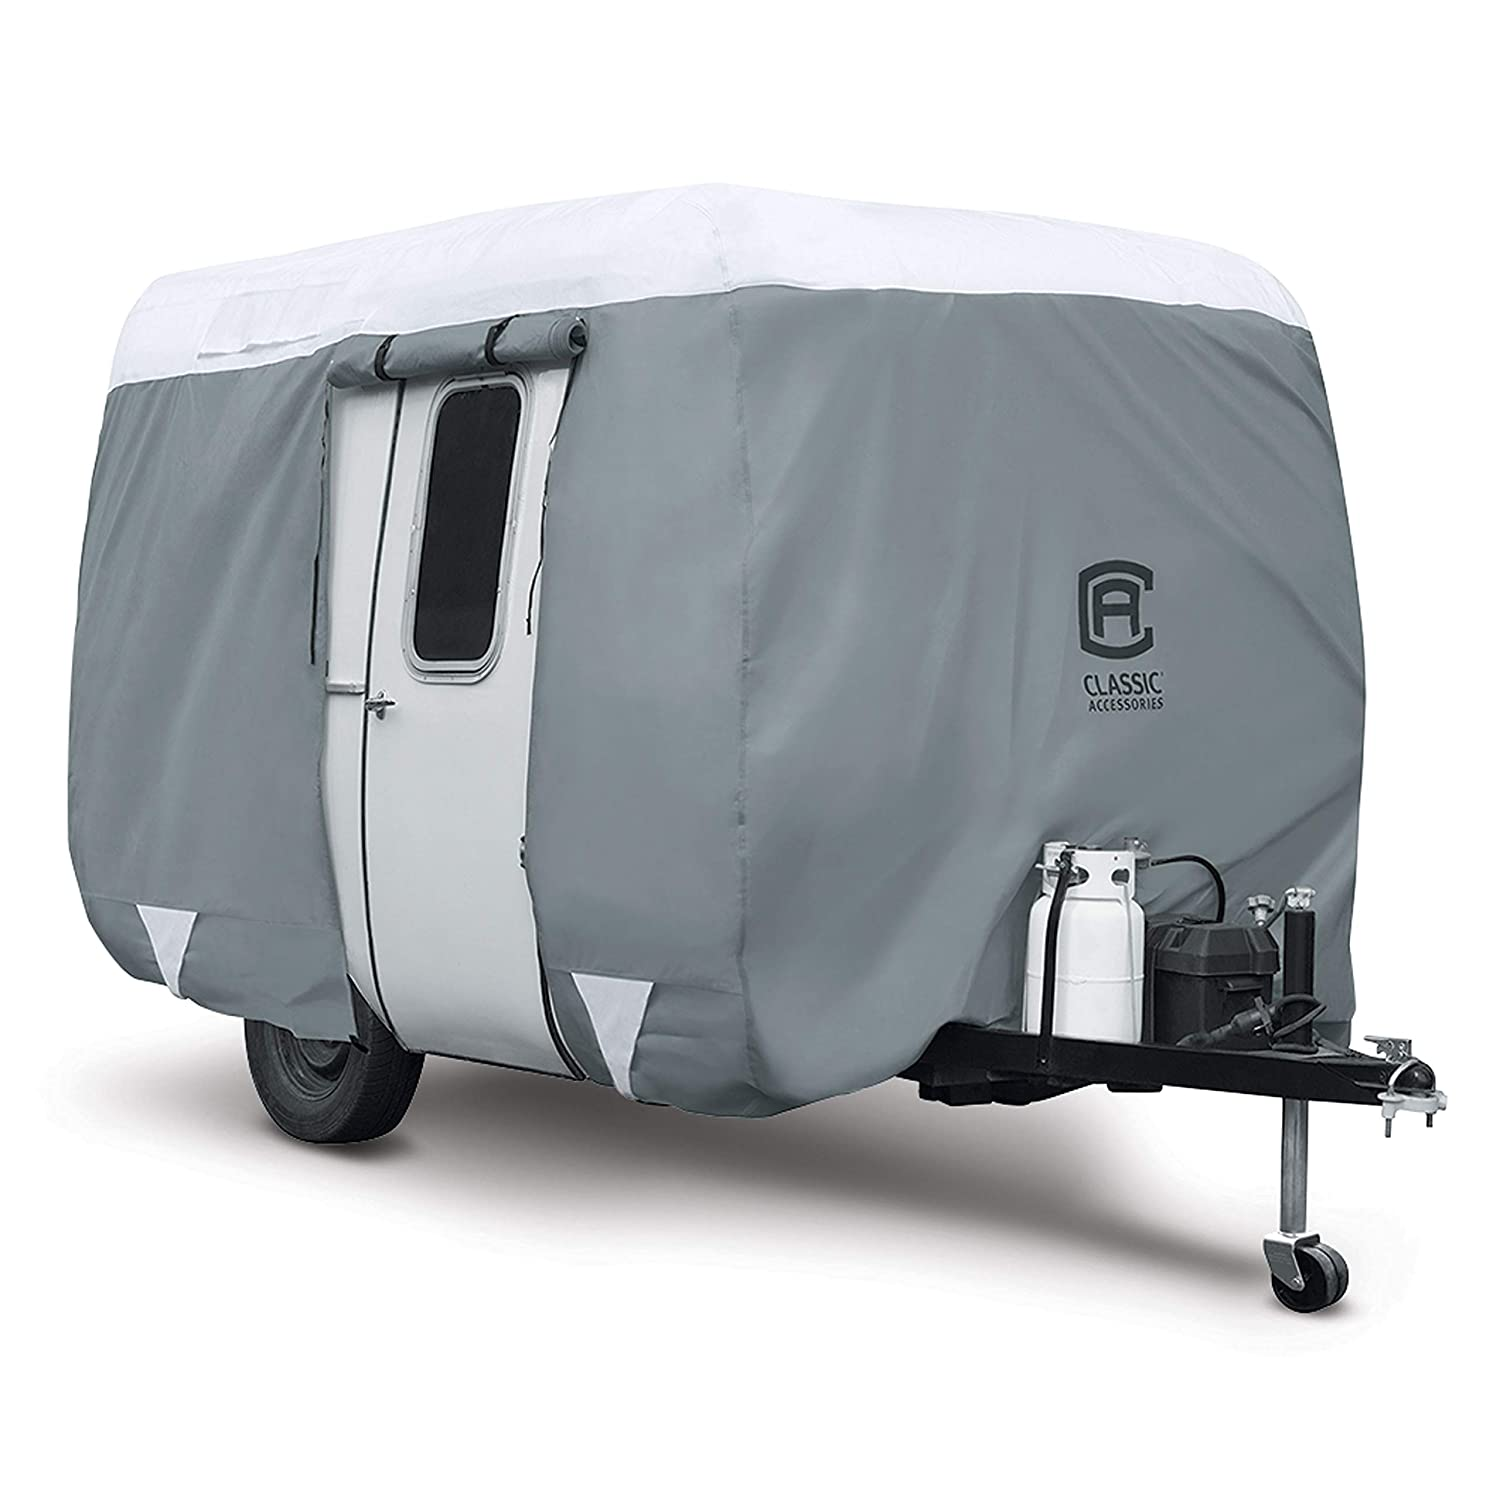 Classic Accessories PolyPro 3 Molded Fiberglass Camping Trailer Cover 131-16 Long